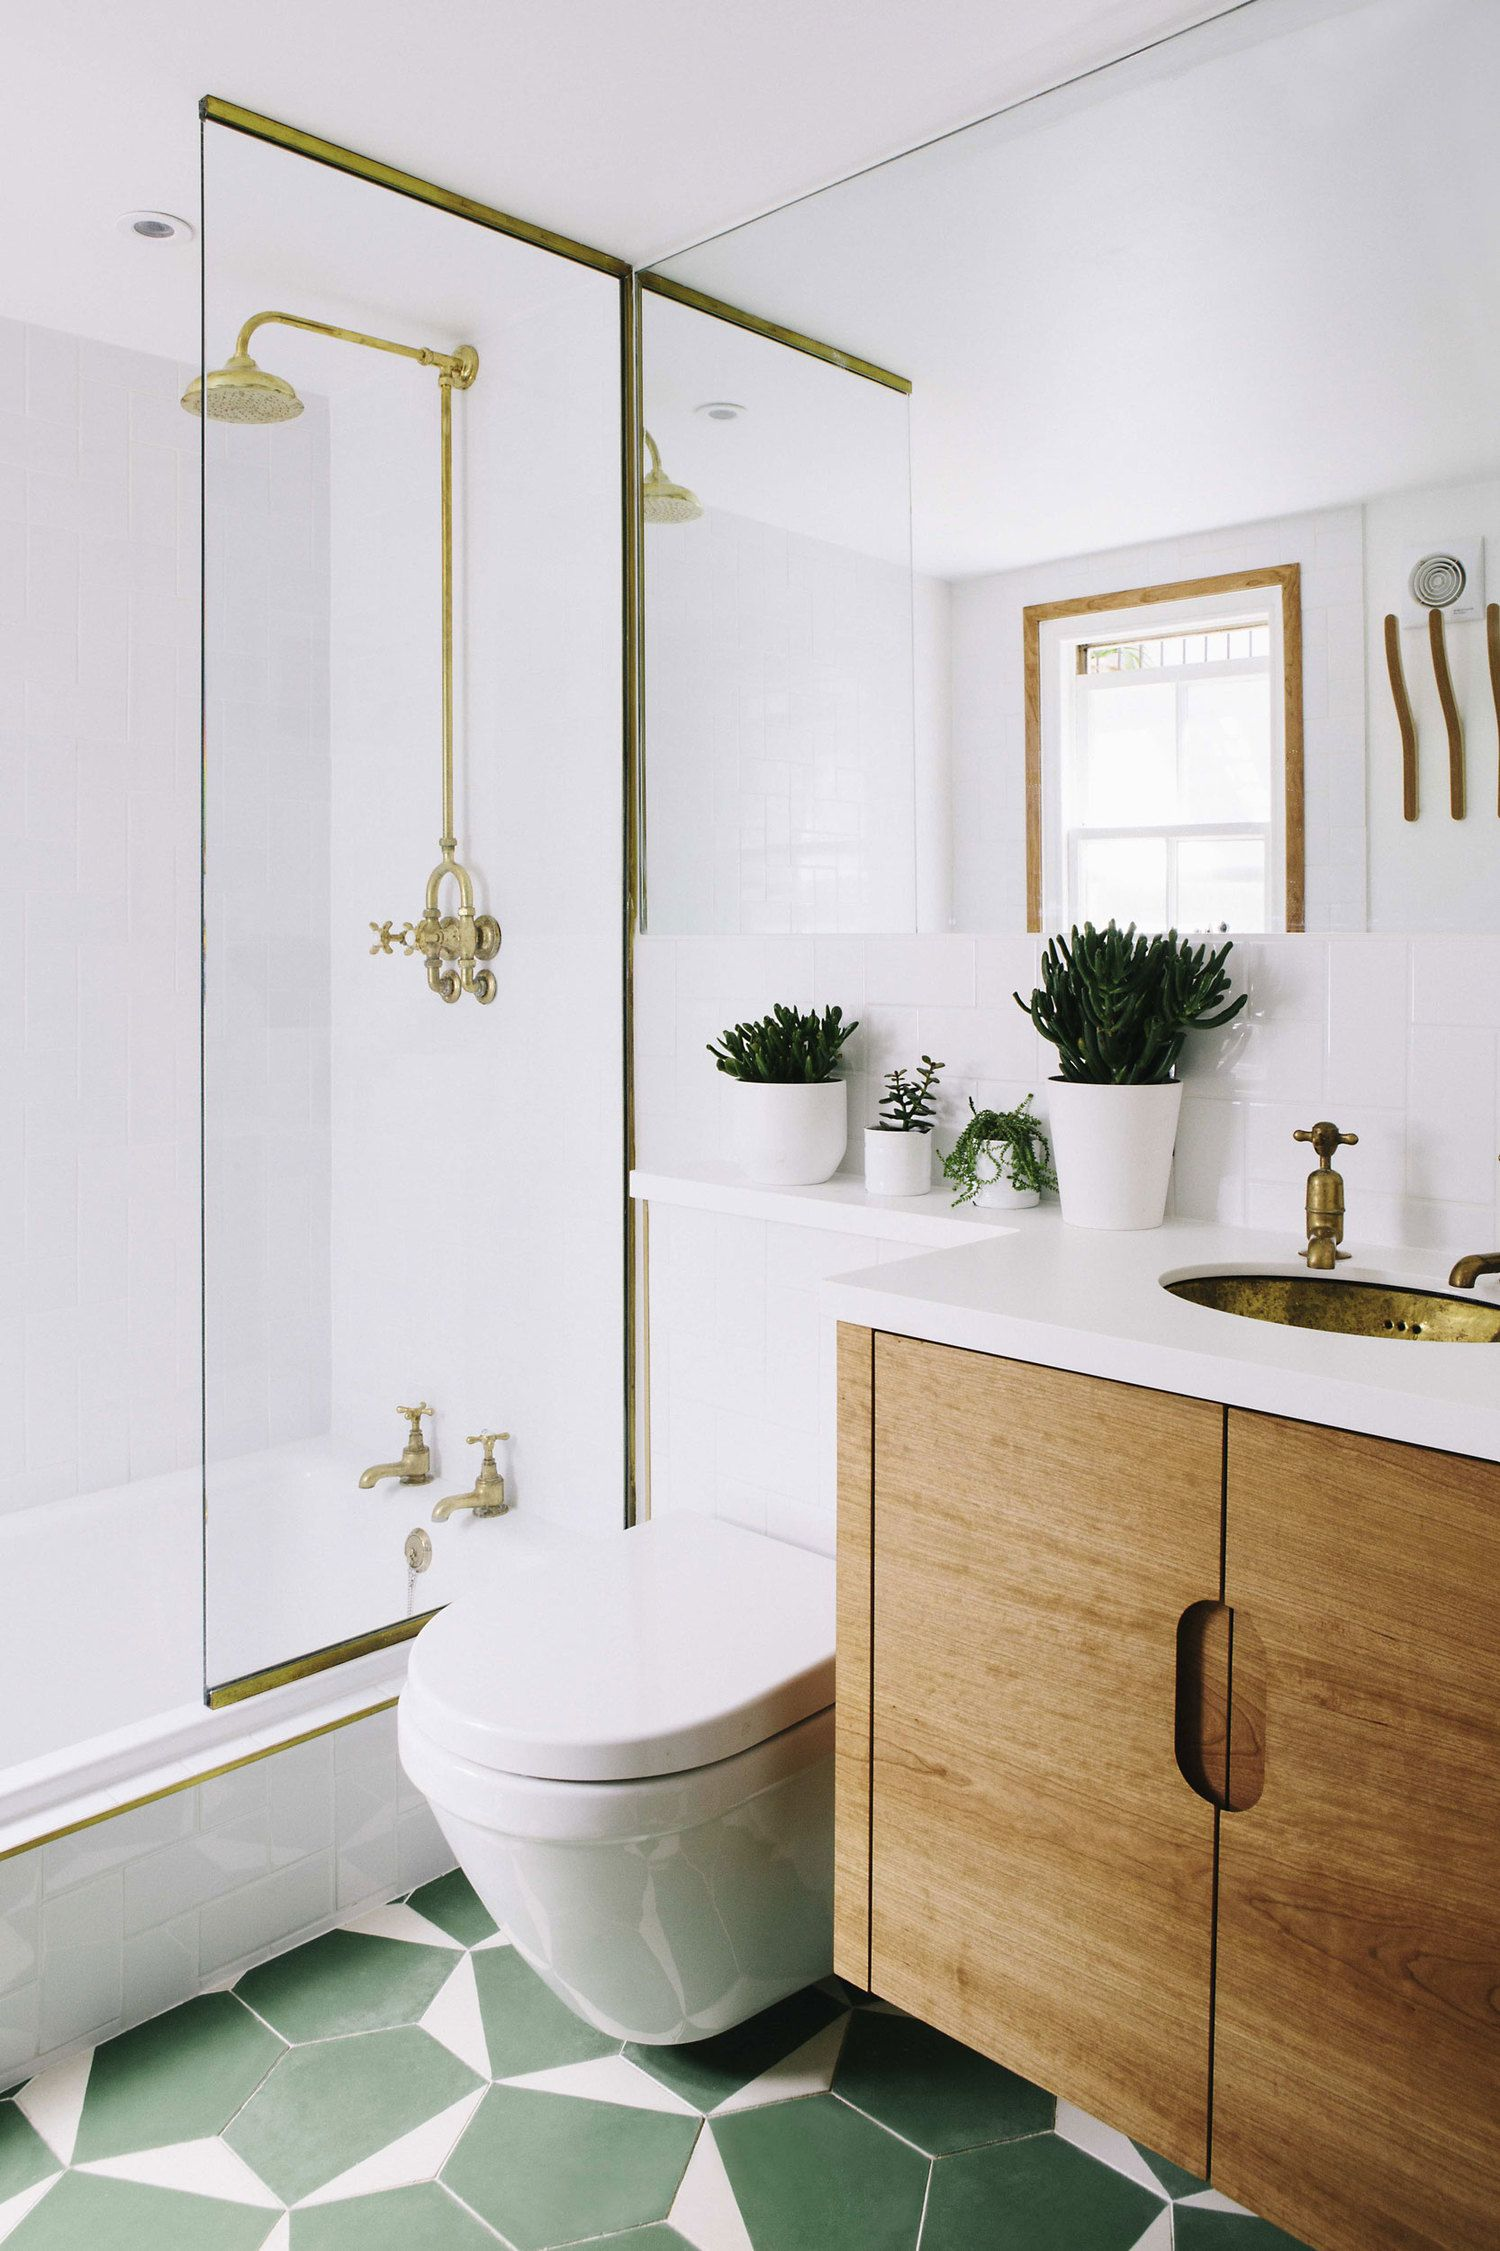 Local joiner, floating bathroom cupboard, white tiles, colourful ...